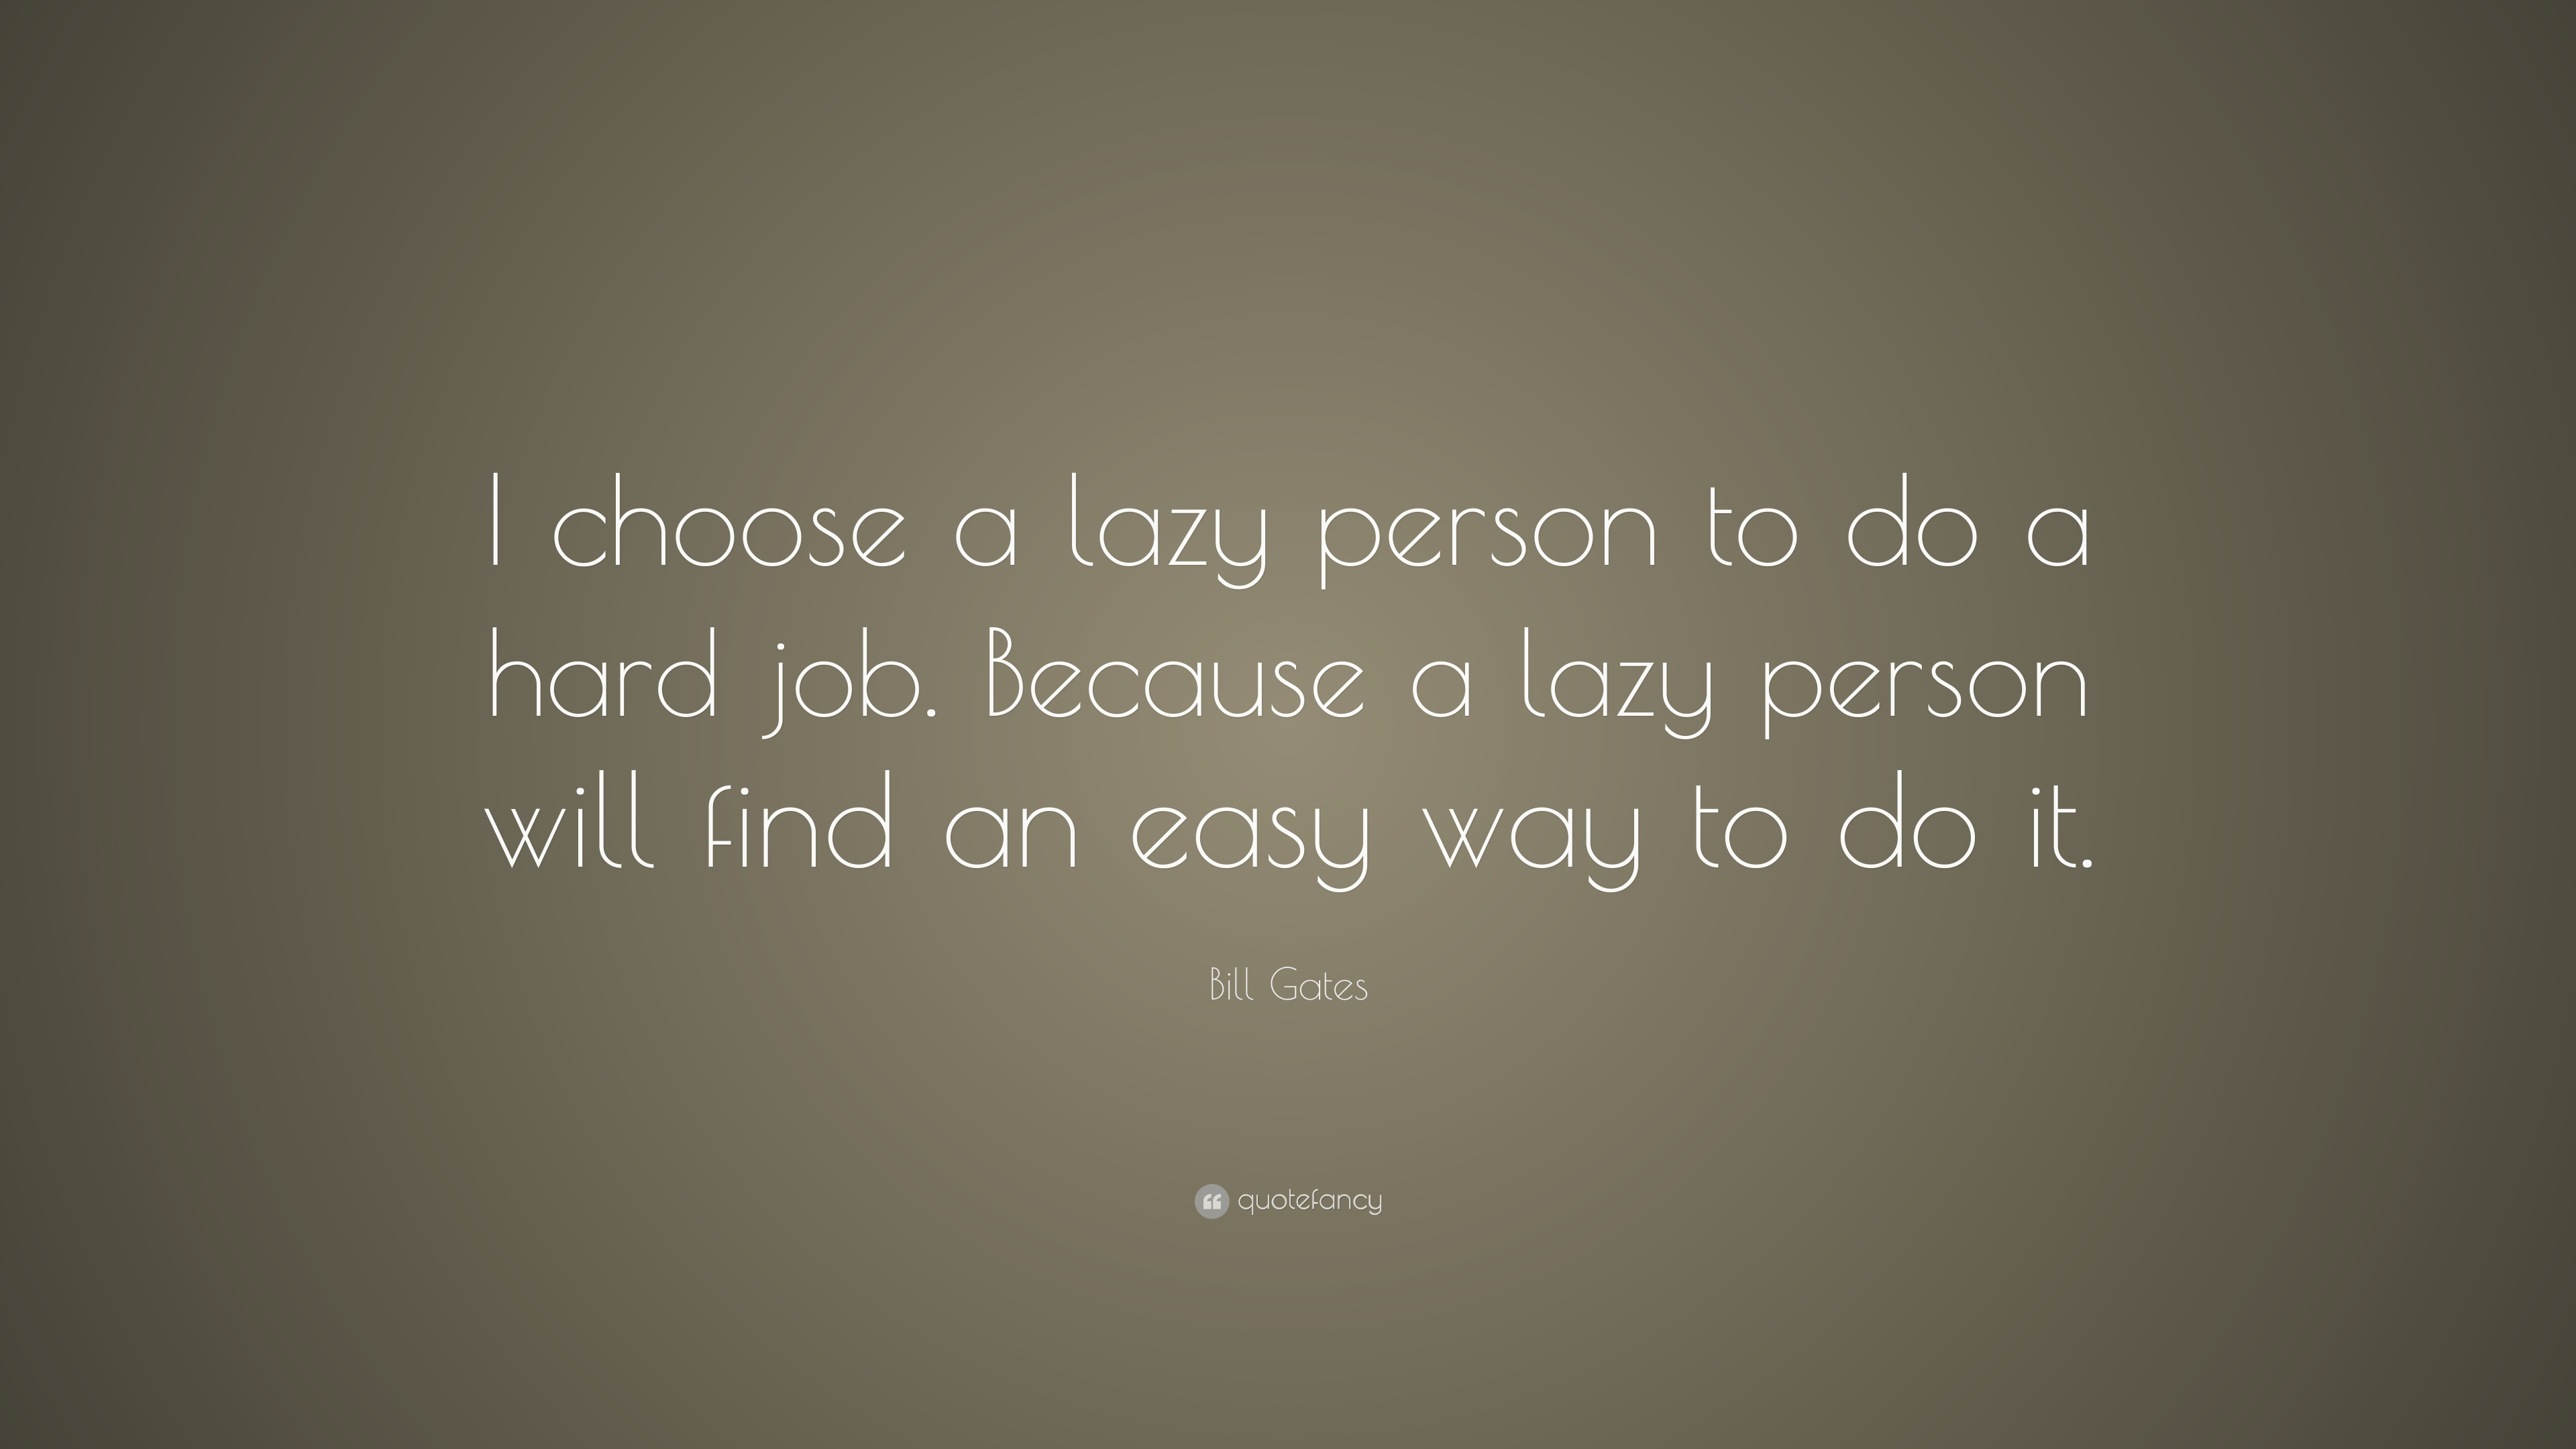 bill gates quote i choose a lazy person to do a hard job bill gates quote i choose a lazy person to do a hard job